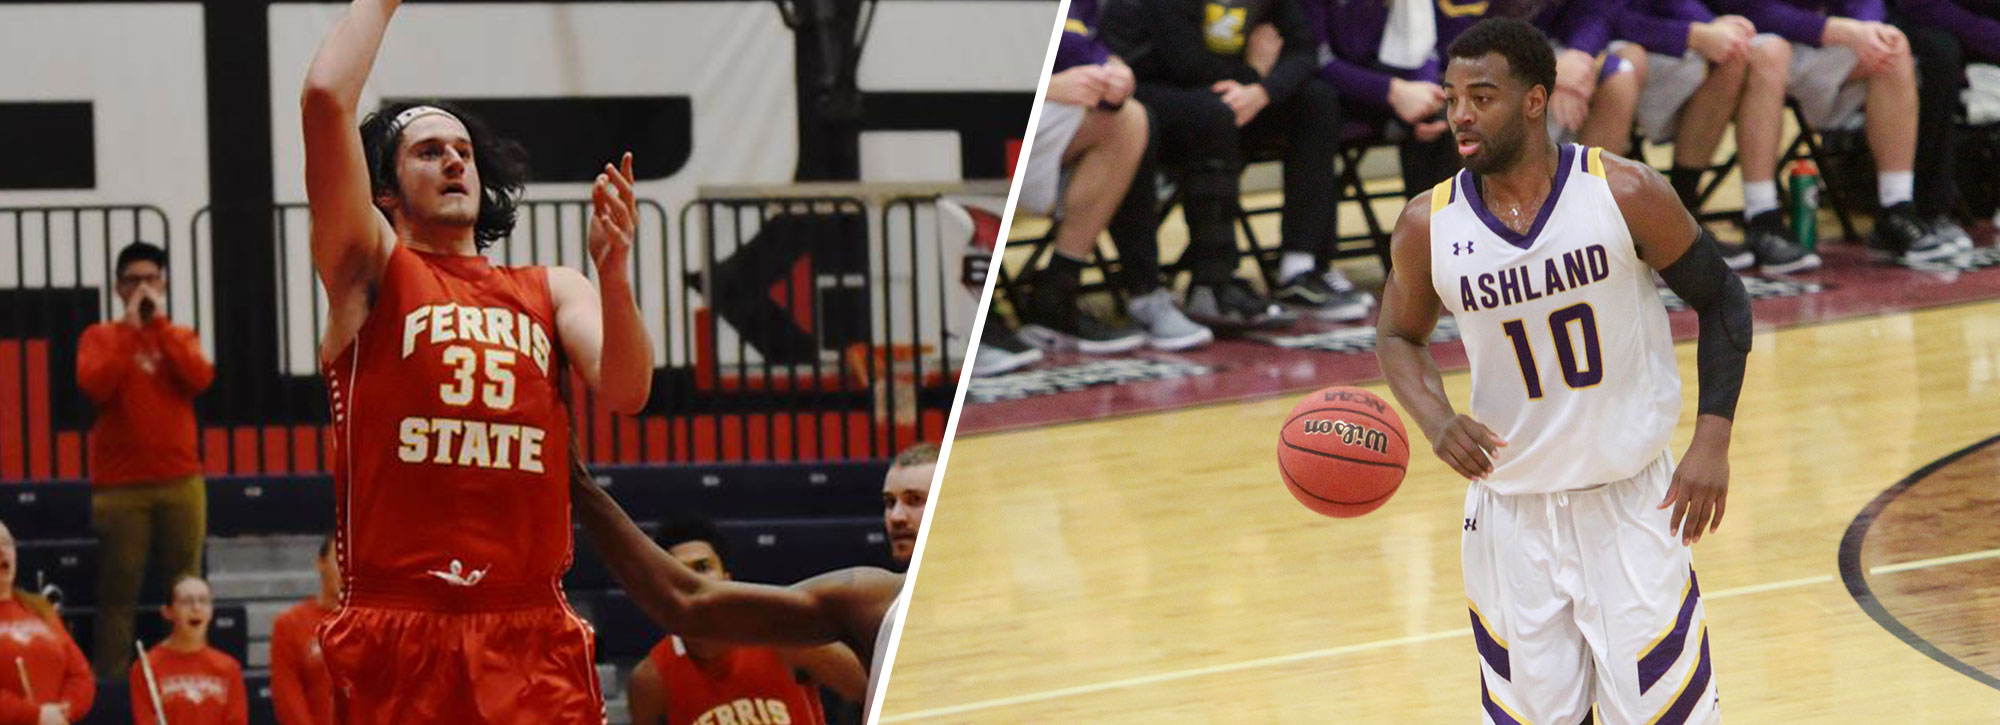 Ferris State's Hankins, Ashland's Davis Claim GLIAC Player of the Week Honors